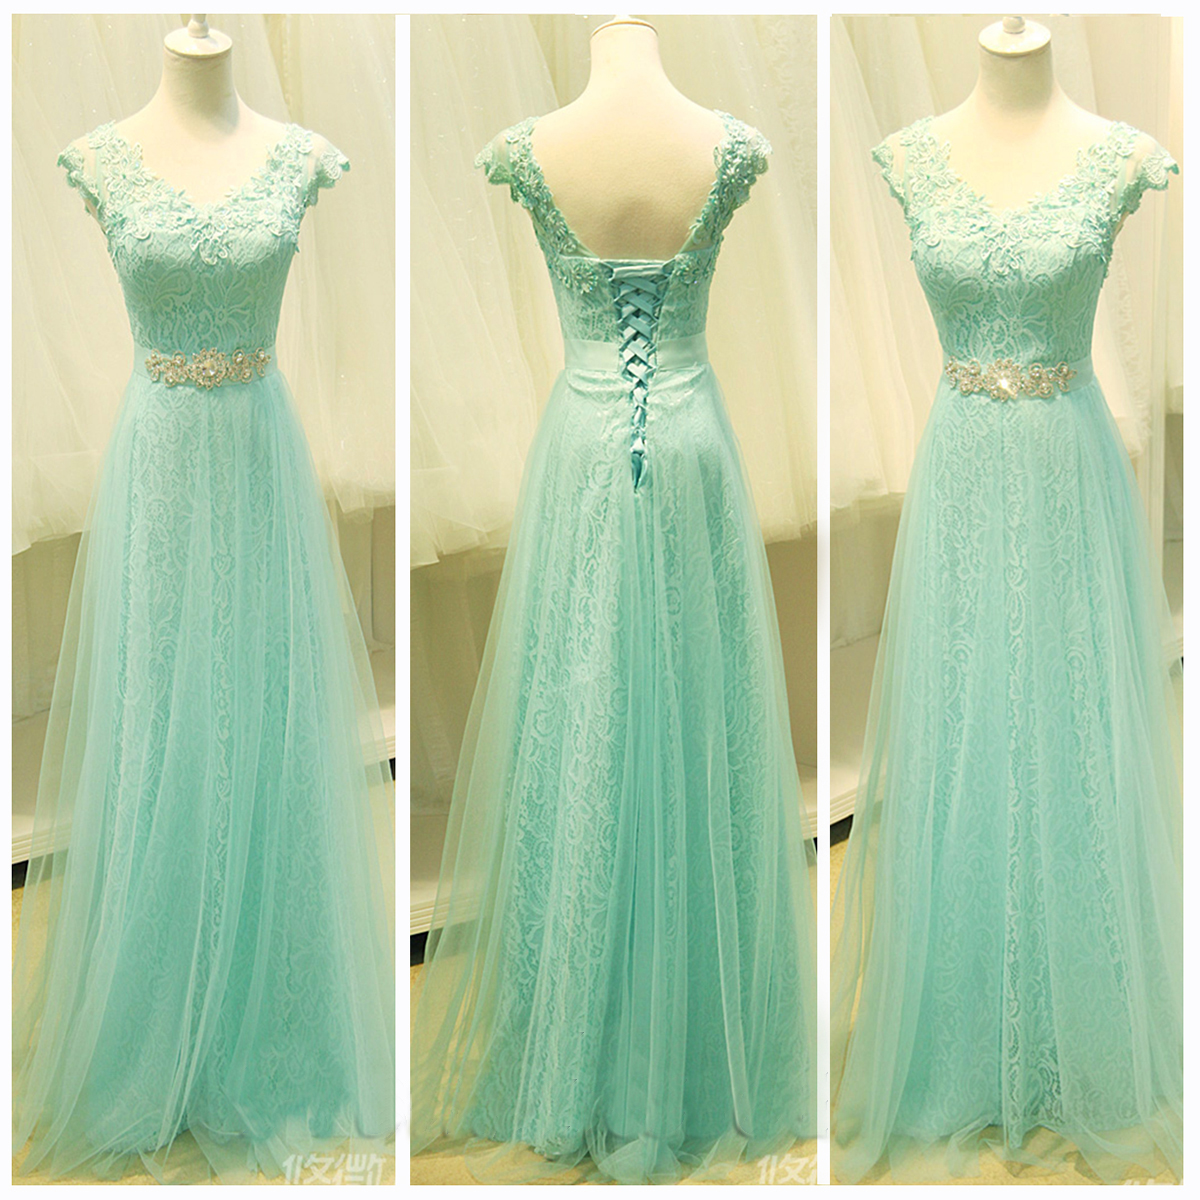 Custom Cheap Cap Sleeves Mint Green Lace Long Prom Dresses Gowns ...